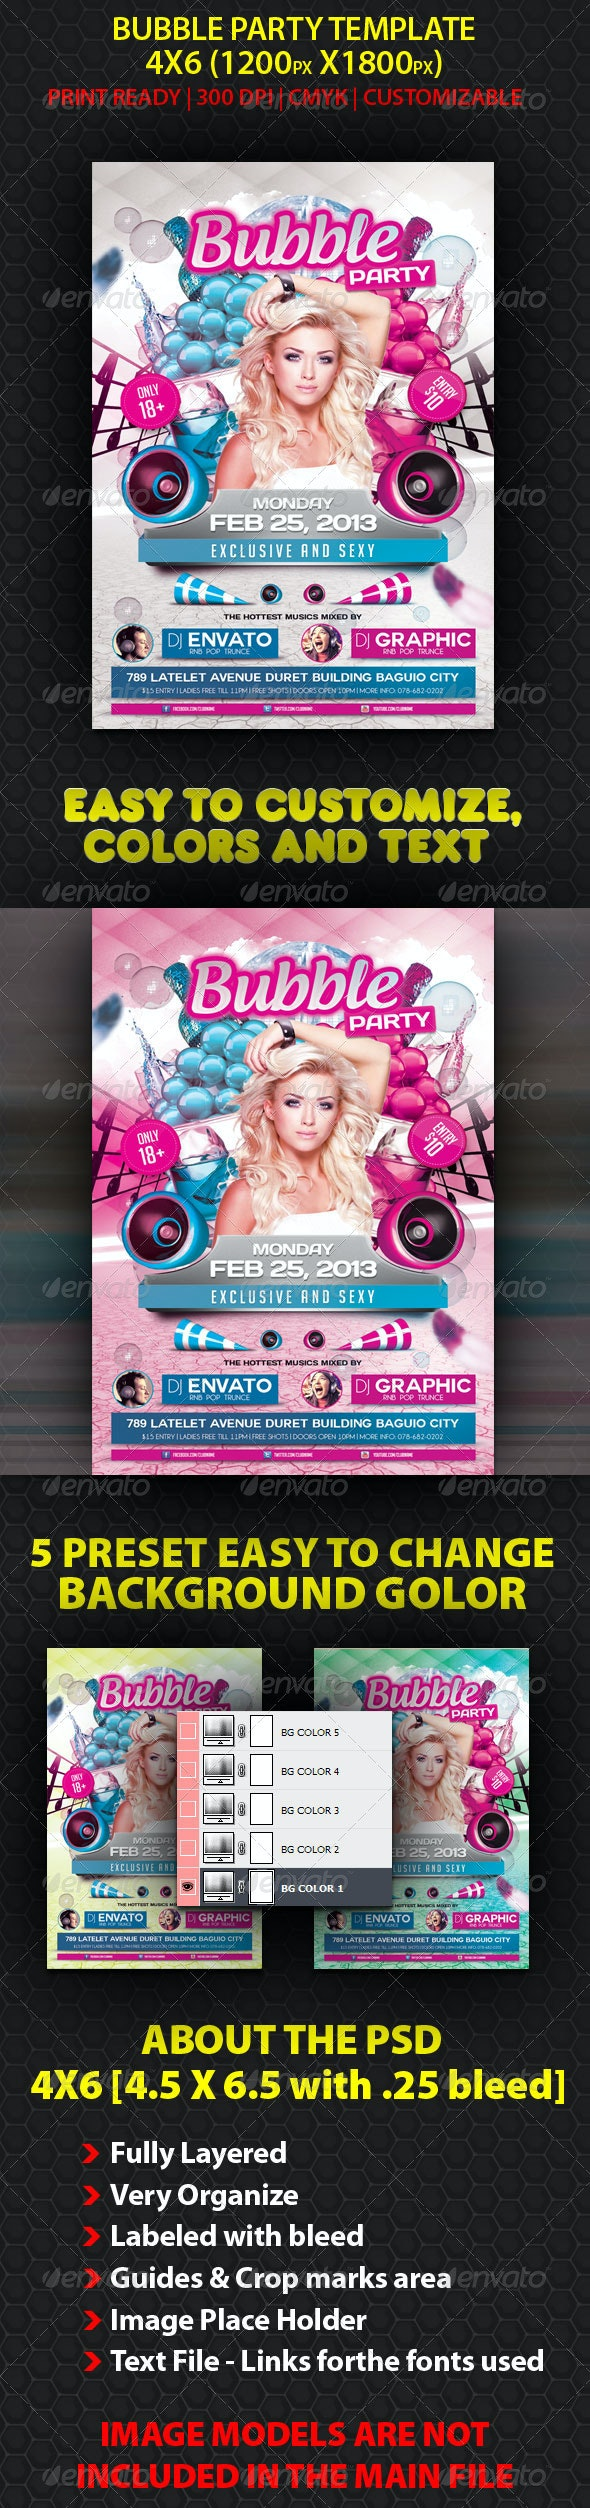 Bubble Party Flyer Template - Clubs & Parties Events